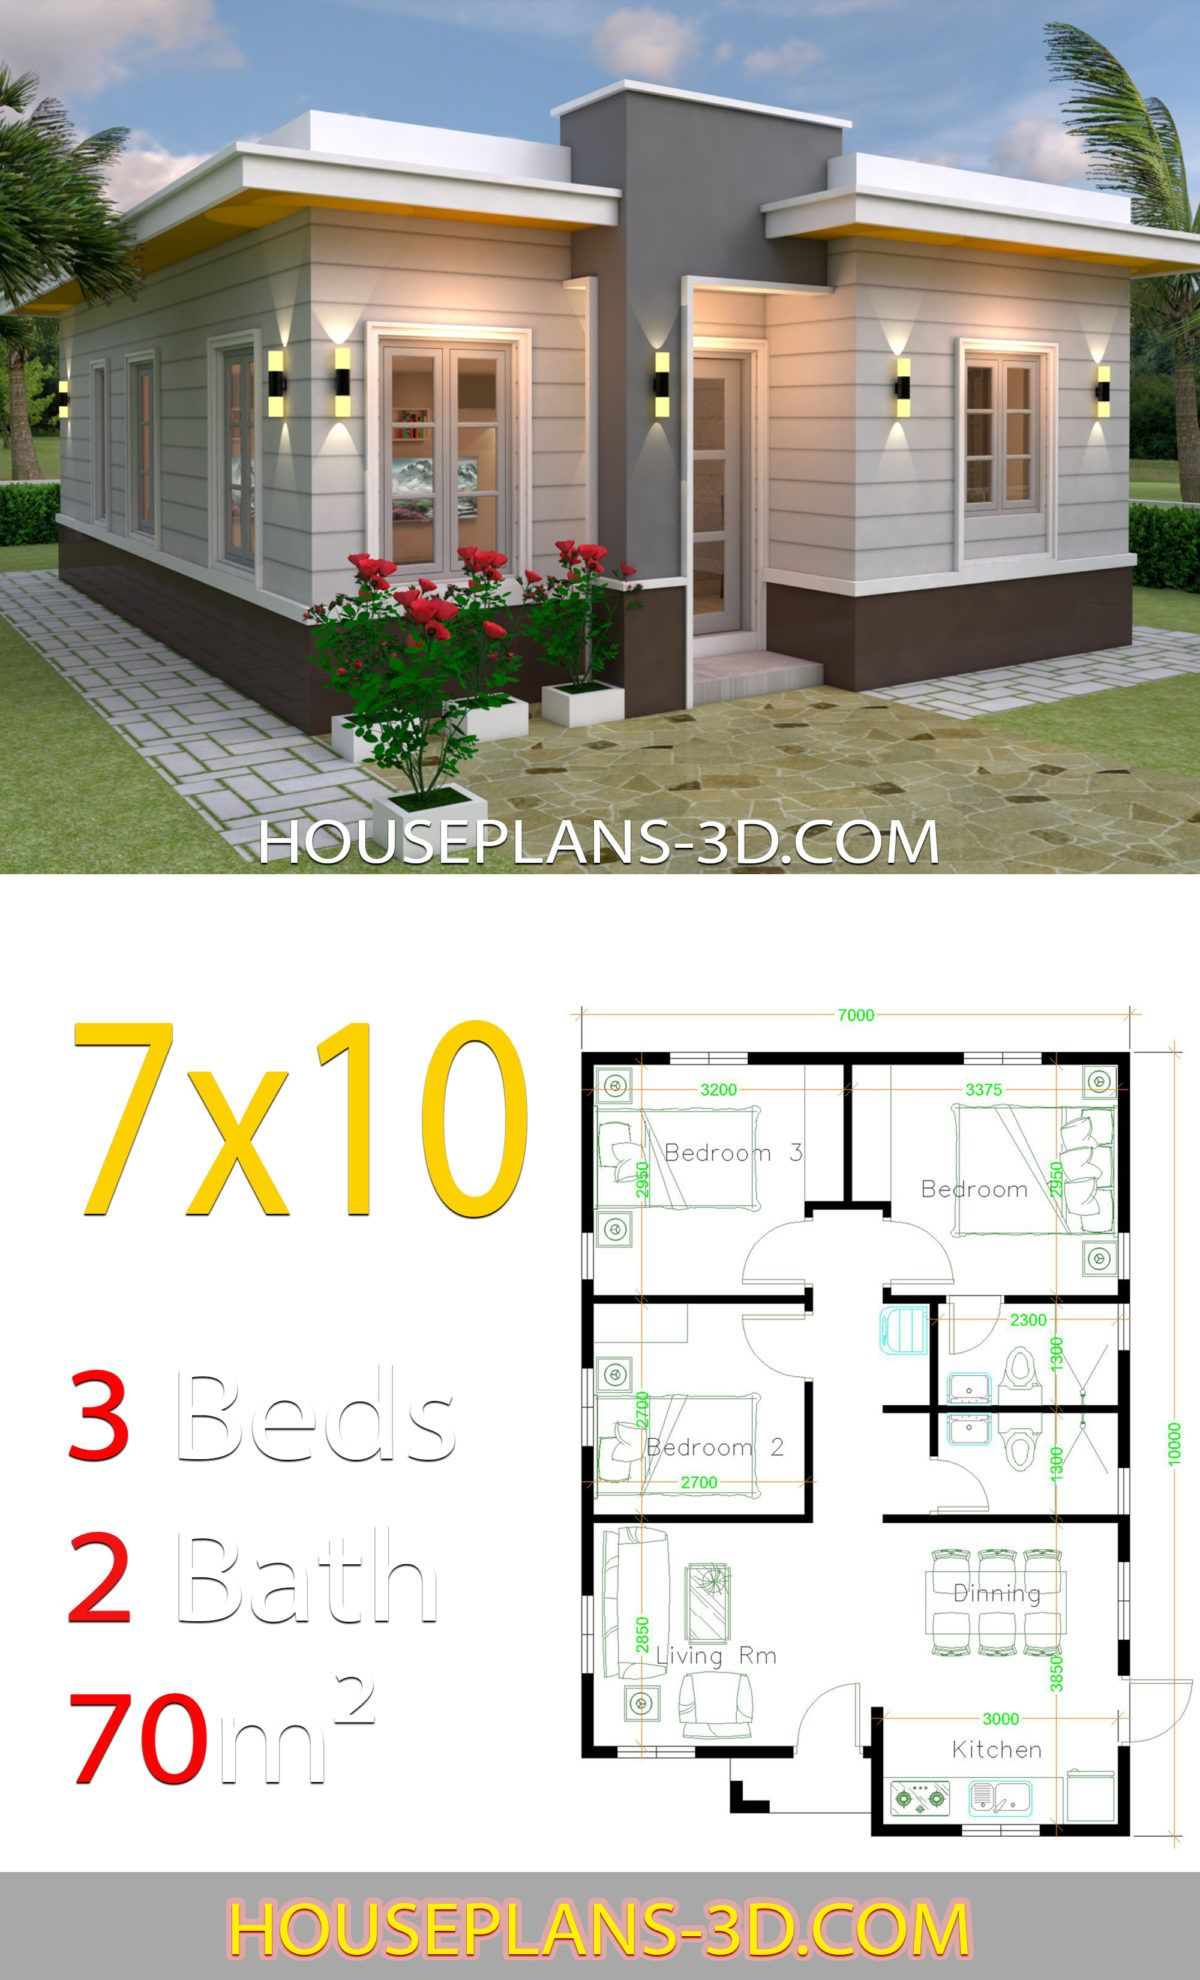 House Design 7x10 With 3 Bedrooms Terrace Roof House Plans 3d In 2020 House Plans Architectural House Plans Flat Roof House